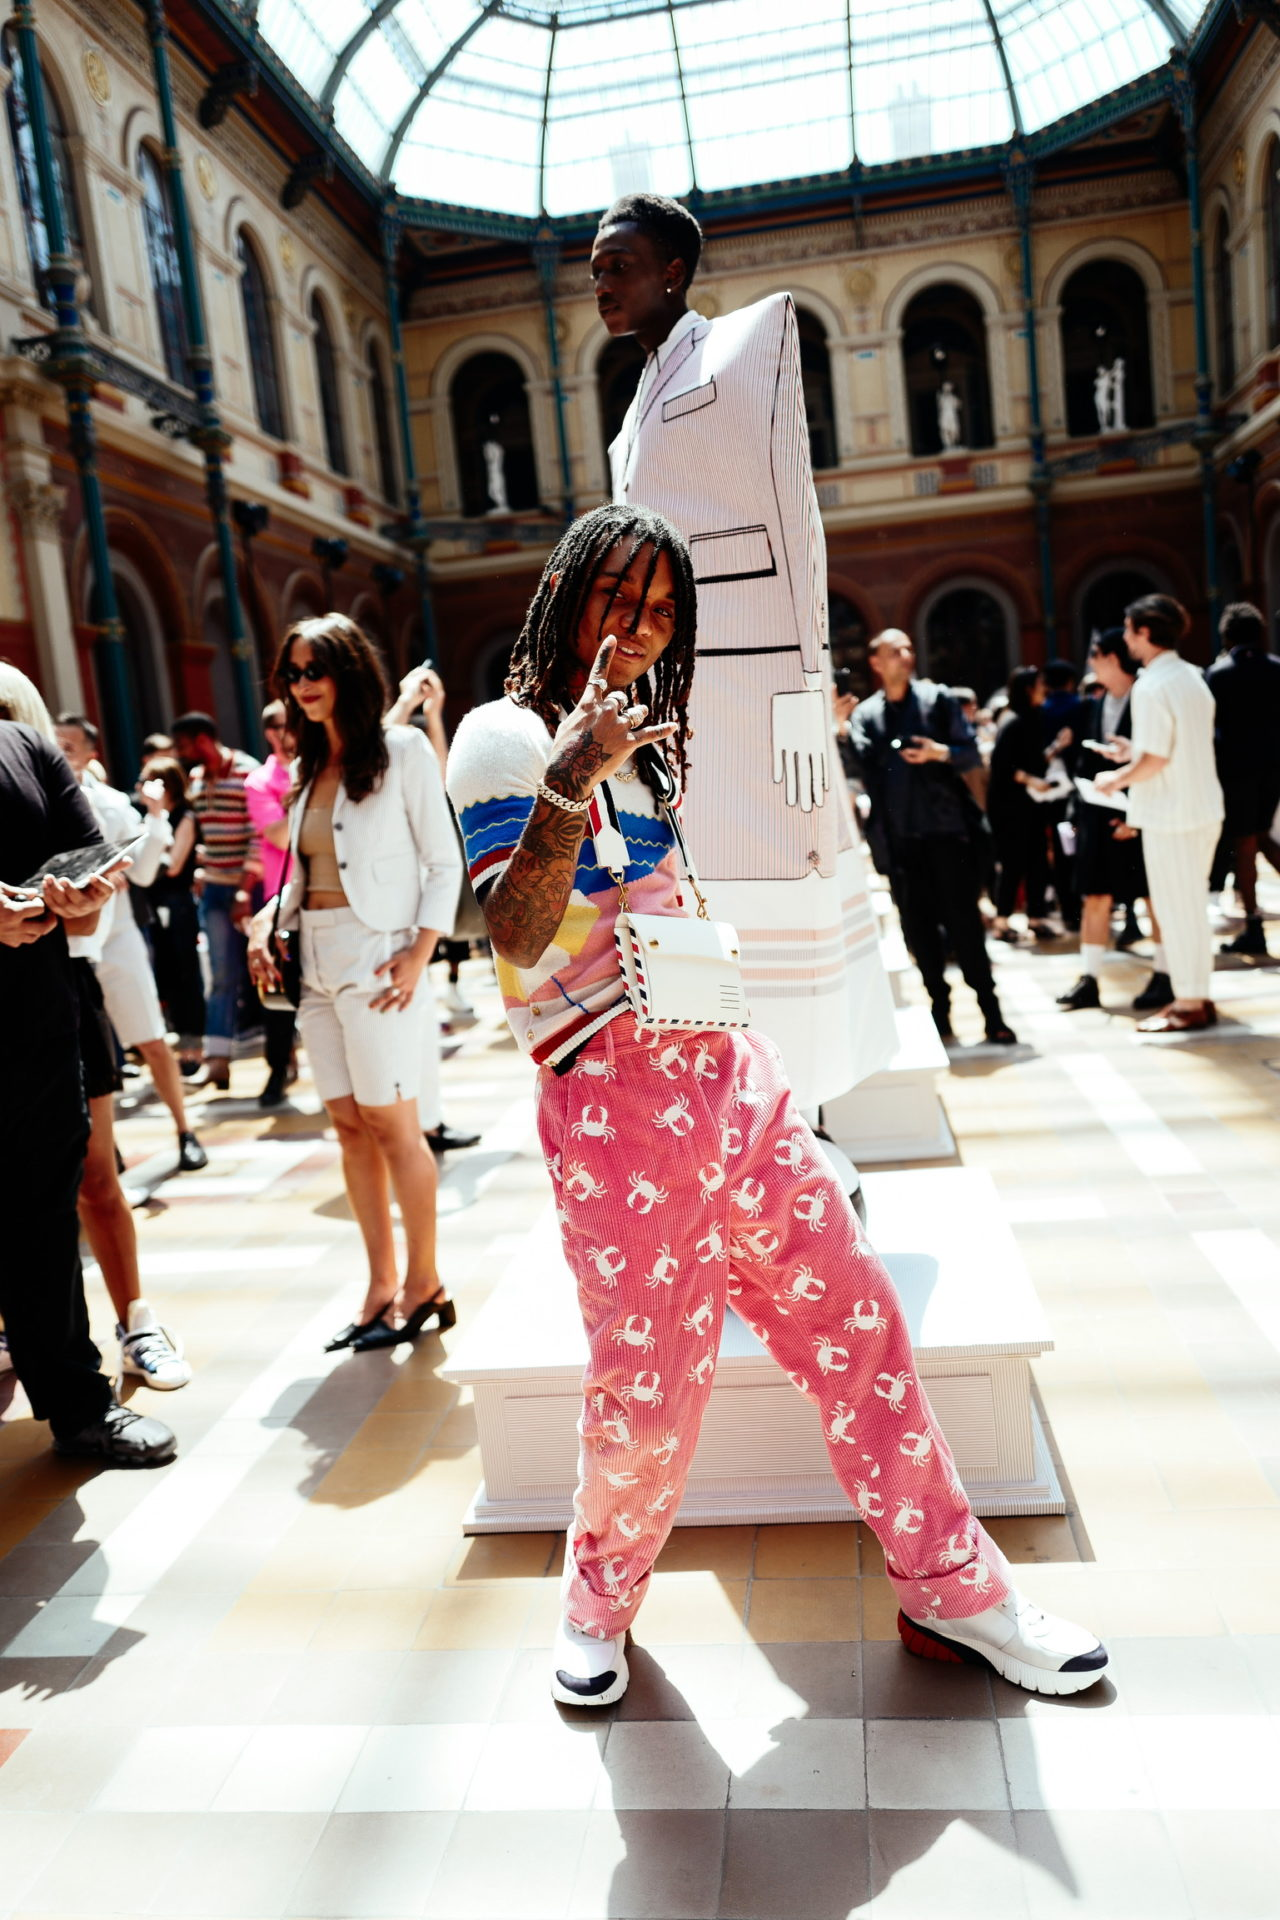 Paris Fashion Week Men's: Backstage at Thom Browne SS20 with Swae Lee